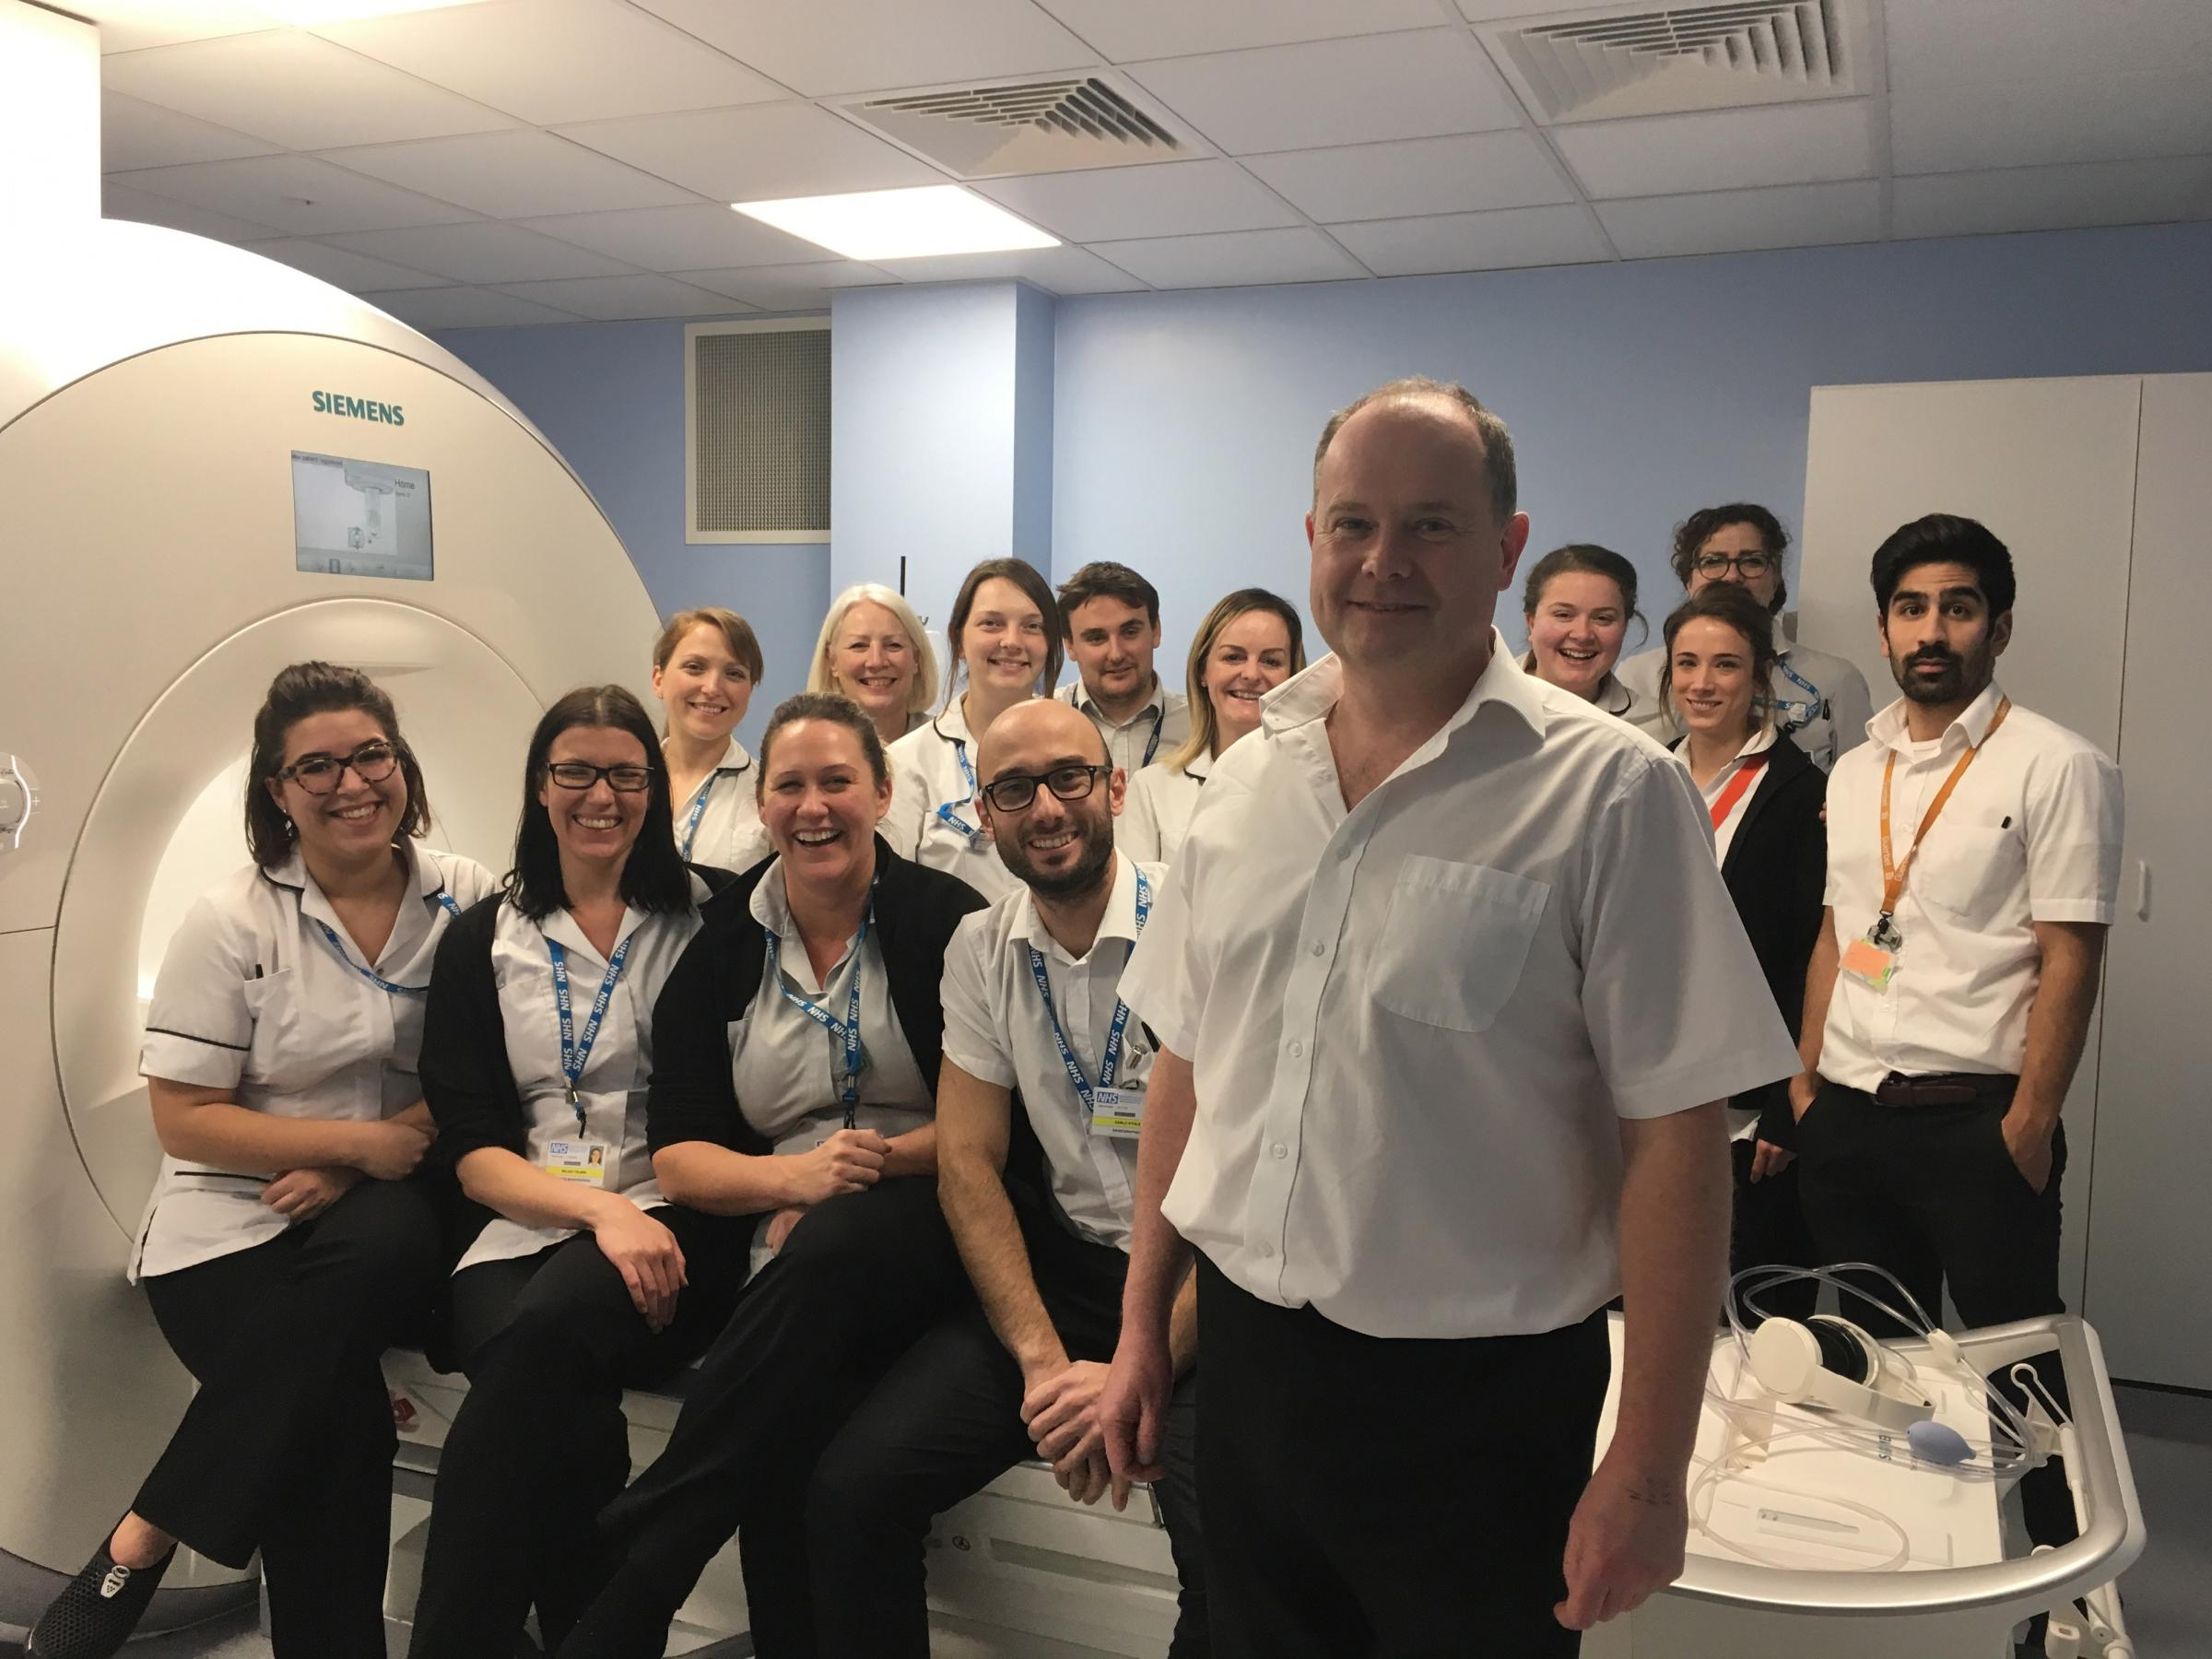 Superintendent Radiographer Matthew Benbow and the Radiography Department team ask the community to help gift their hospital a new Mini MRI Scanner